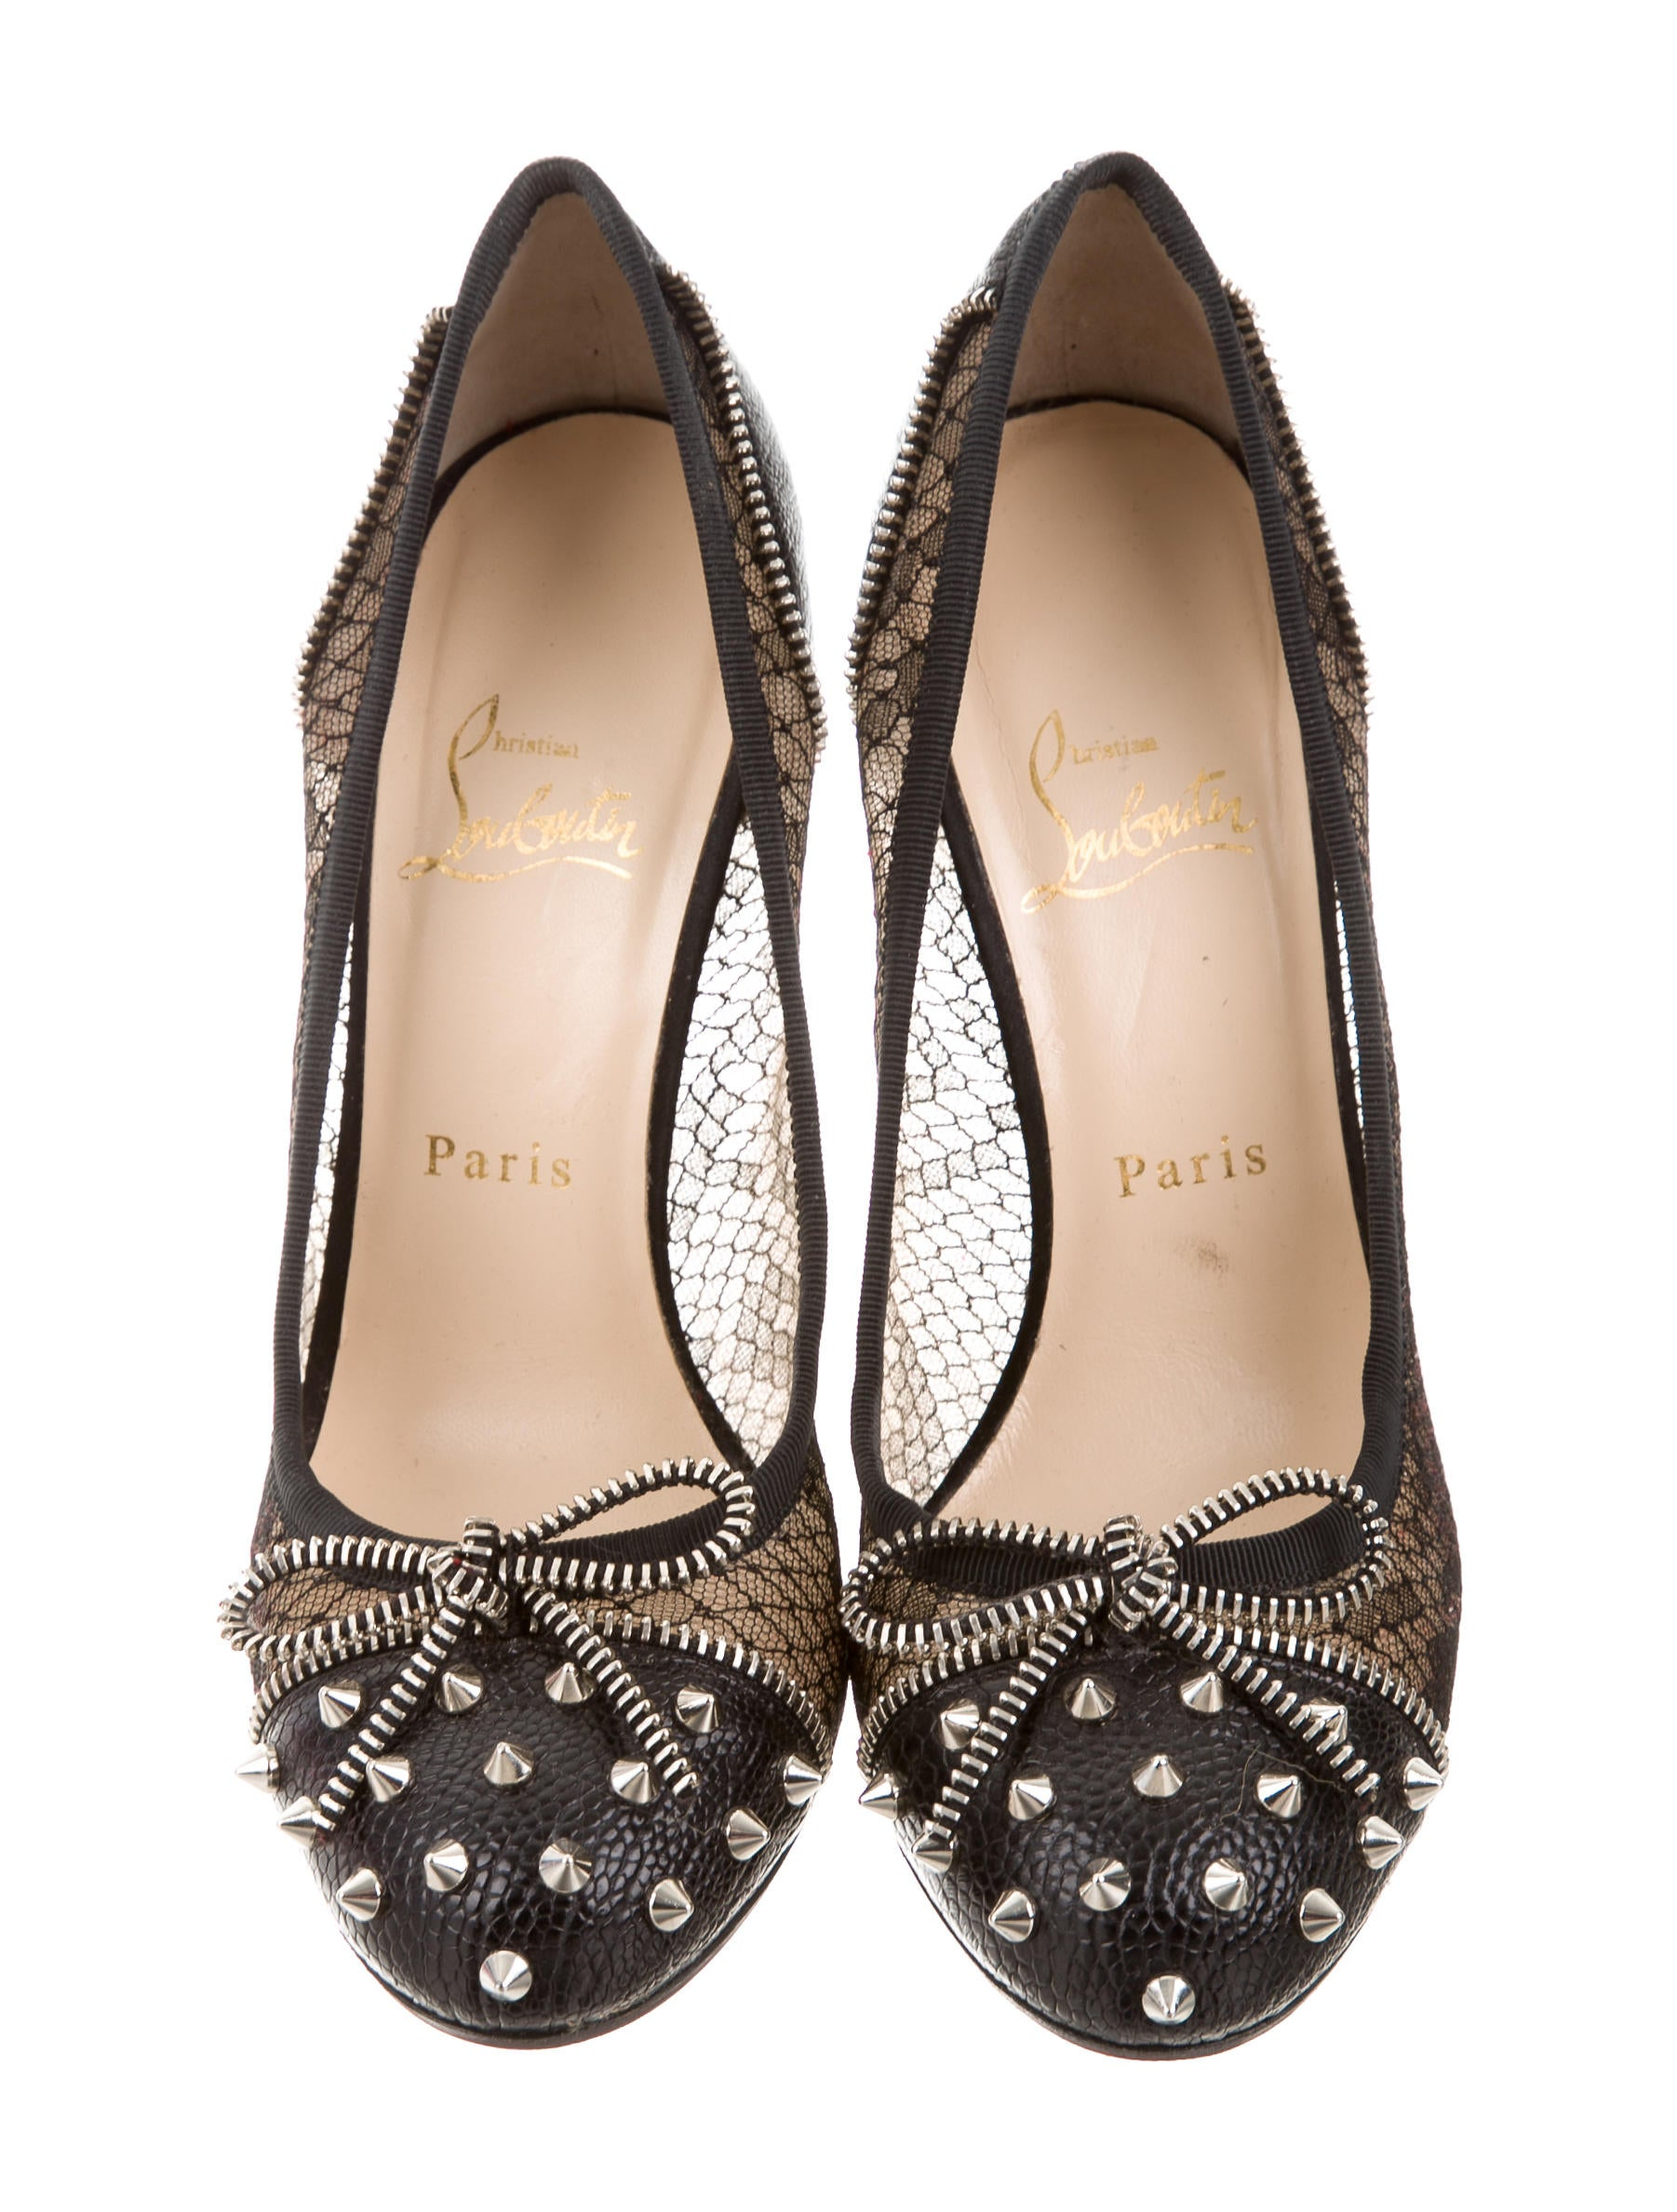 Shop lace pump dress shoes at Neiman Marcus, where you will find free shipping on the latest in fashion from top designers.